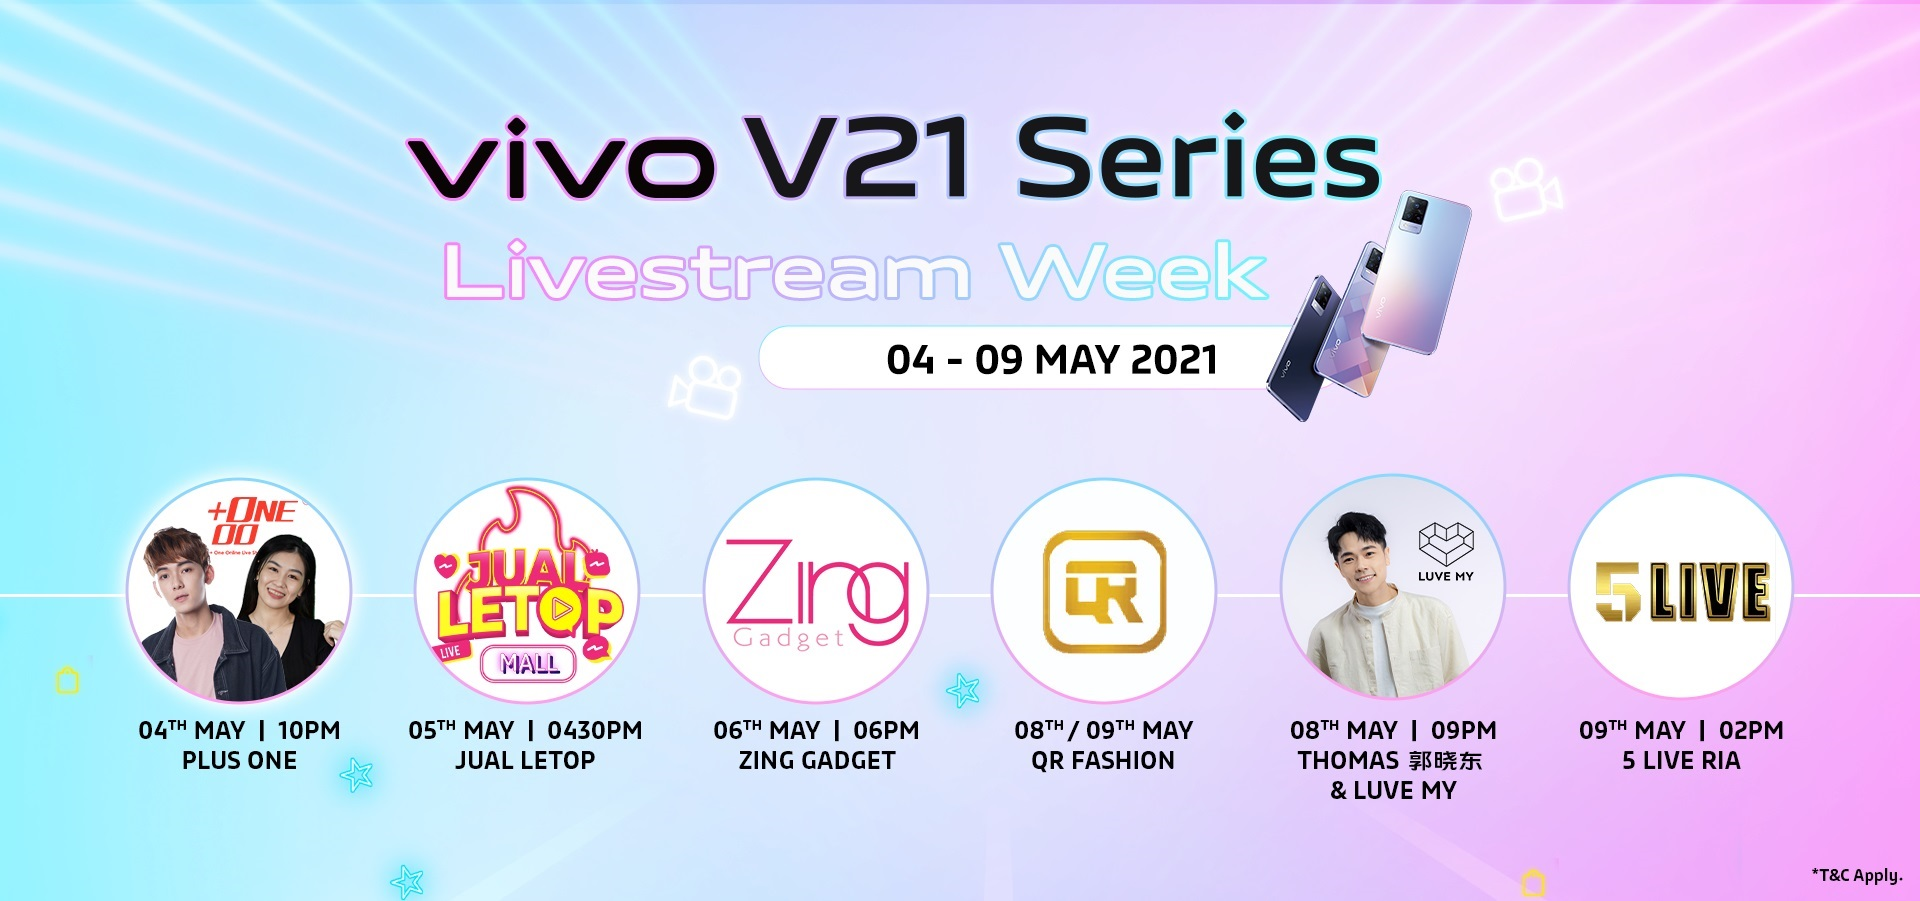 Exciting Giveaways During The Kickstart of vivo Malaysia latest V21 Series Livestream Week